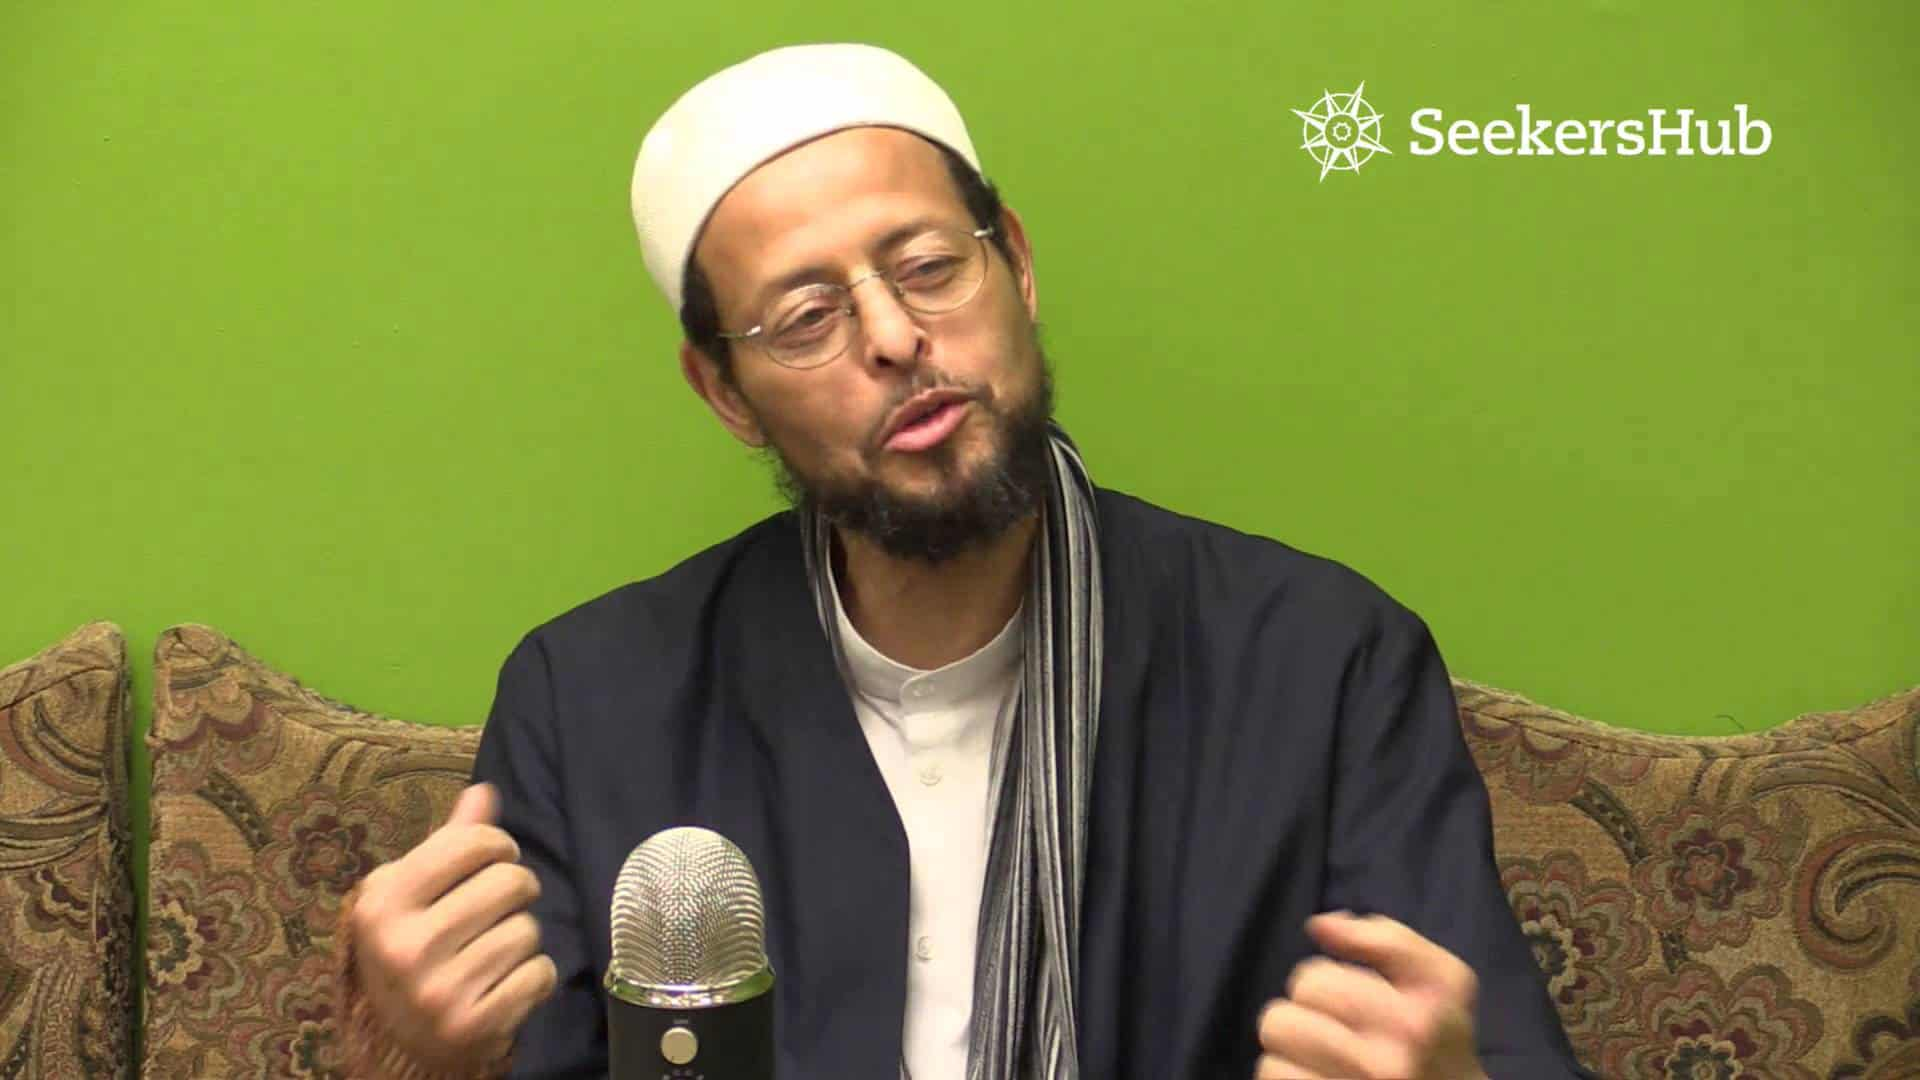 Zaid Shakir – Sunni-Shia Hatred: A Disease We Must Fight